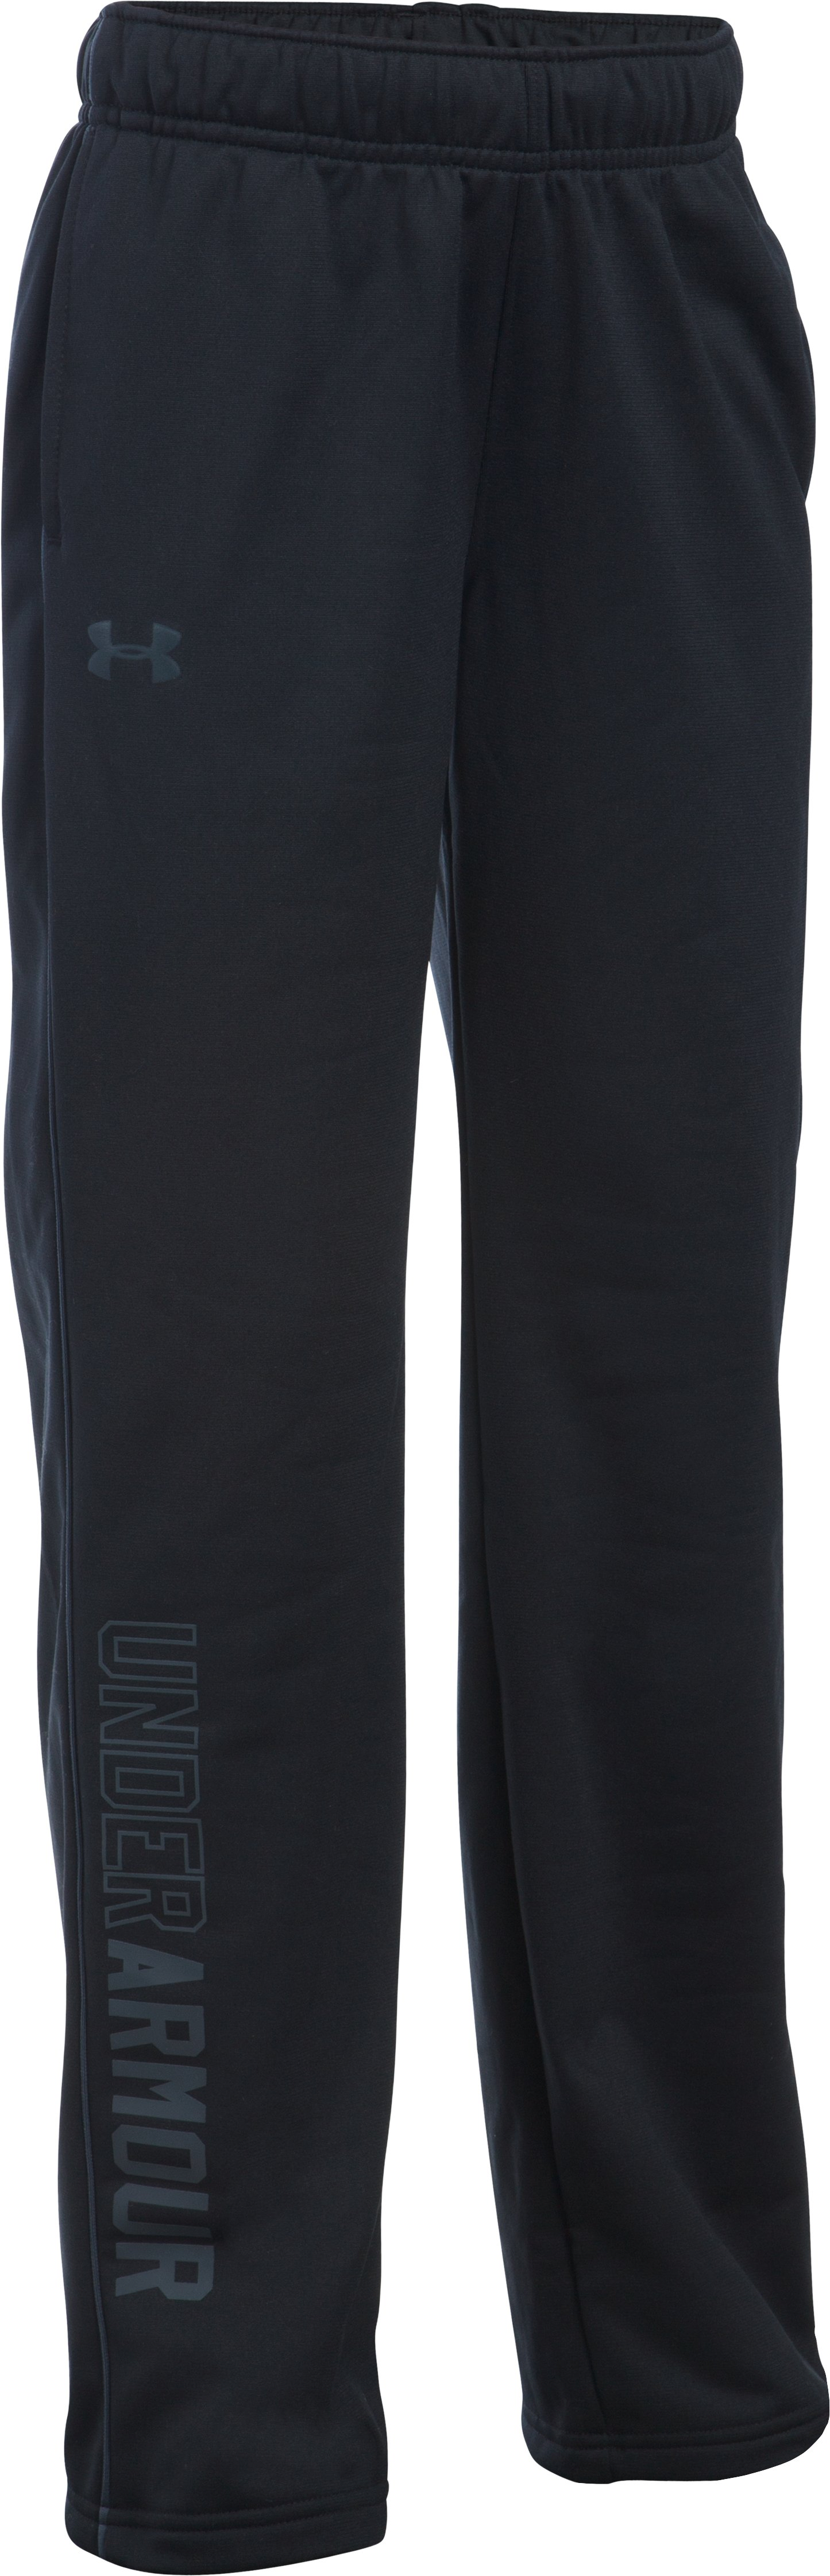 Girls' UA Rival Training Pants, Black , undefined